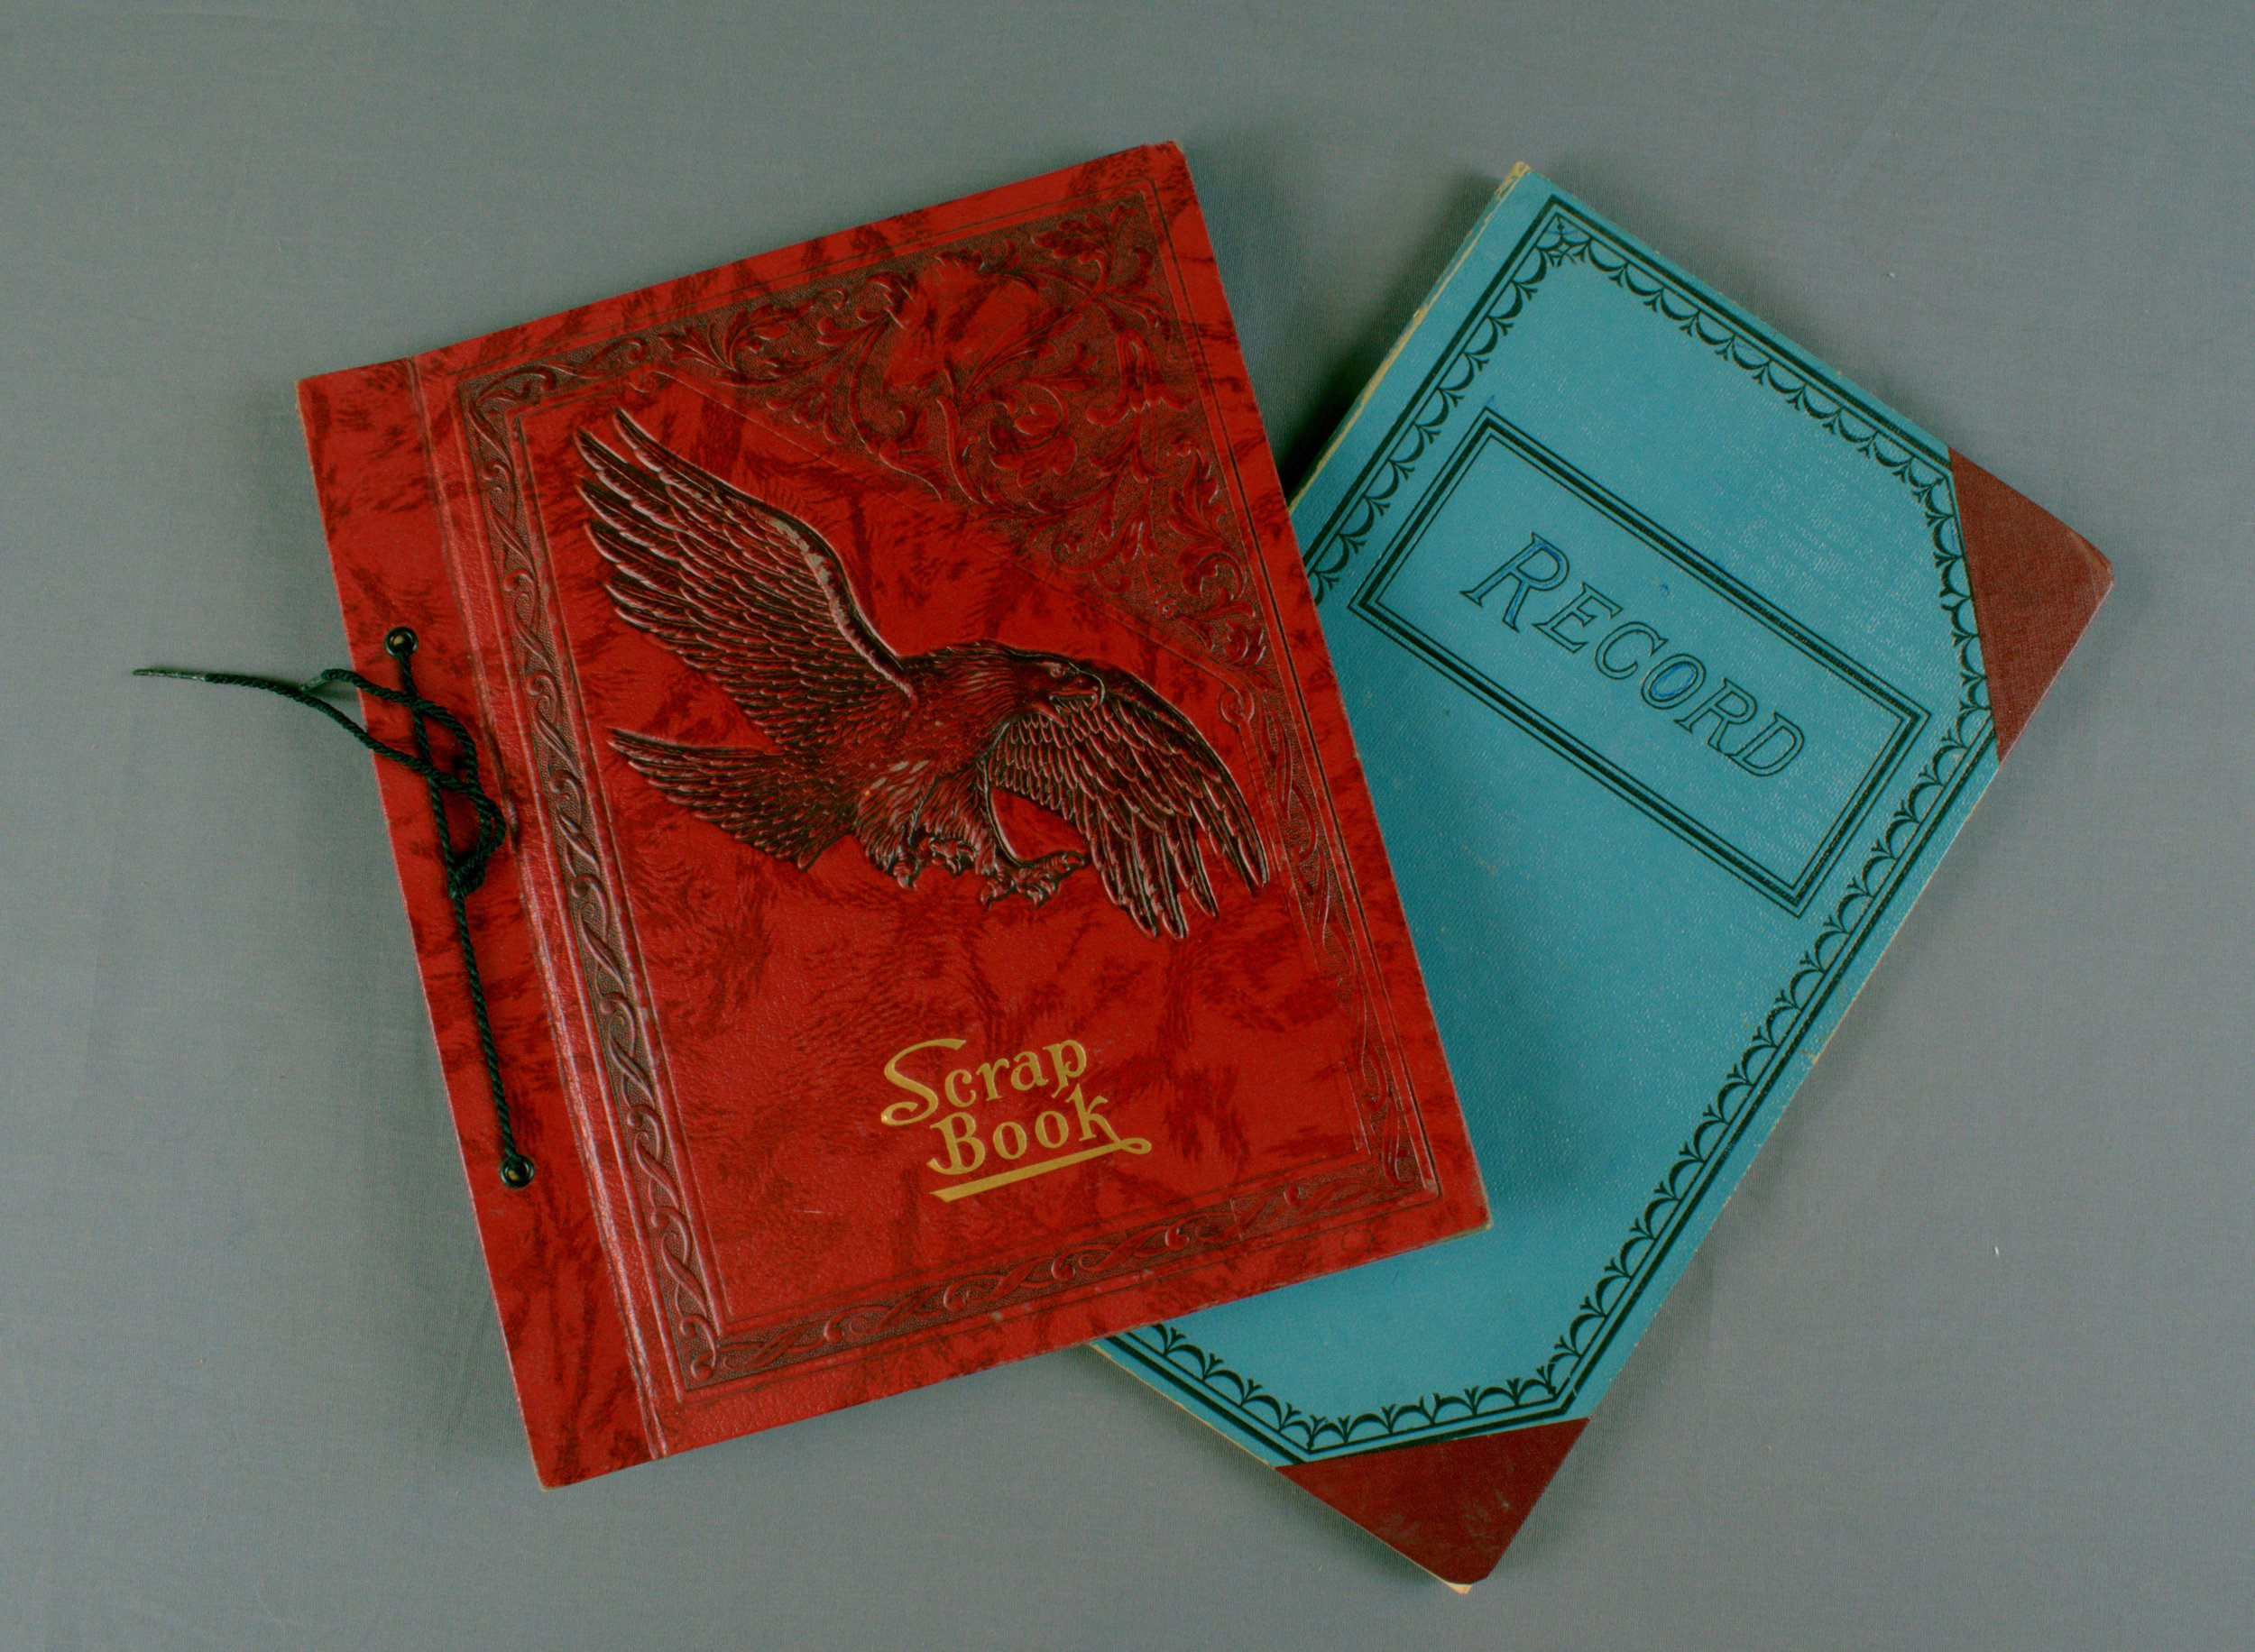 "This 9 1/4 x 11"" scrapbook has a red cover with an embossed eagle in center and gold lettering ""Scrap Book"" on front cover. The spine is bound with a black cord tie. The scrapbook contains newspaper articles written by O.H. Prestemon between 1940-1951 on flowers and Columbia Heights Garden Club notes.  This 12 x 7 1/2"" blue hard cover ledger has burgundy corners. The inside cover has a handwritten note indicating the book contains the minutes from 1964-1966 and the official record of the Columbia Heights Garden Club."